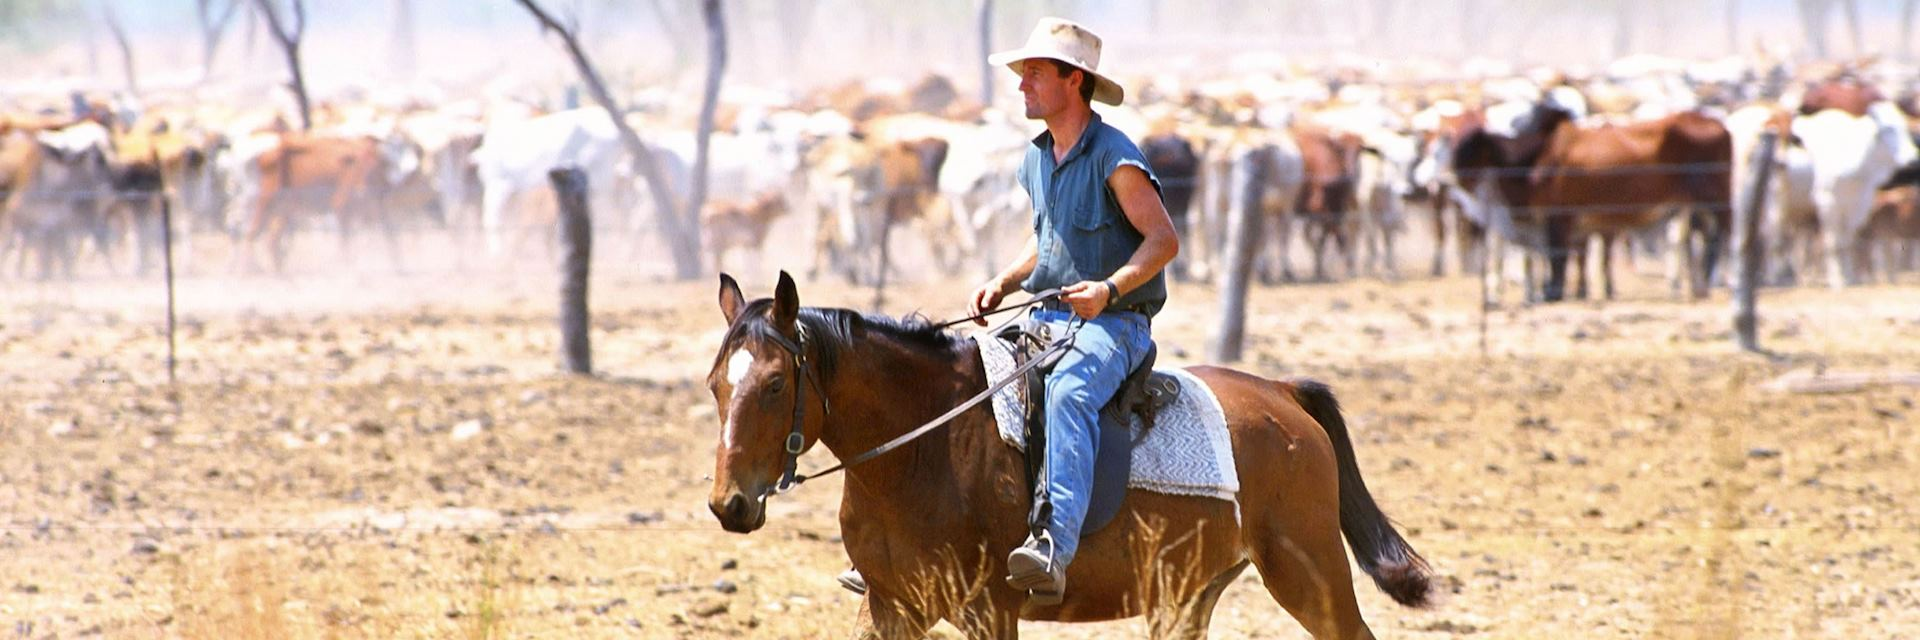 A drover working on an Outback cattle station, Australia